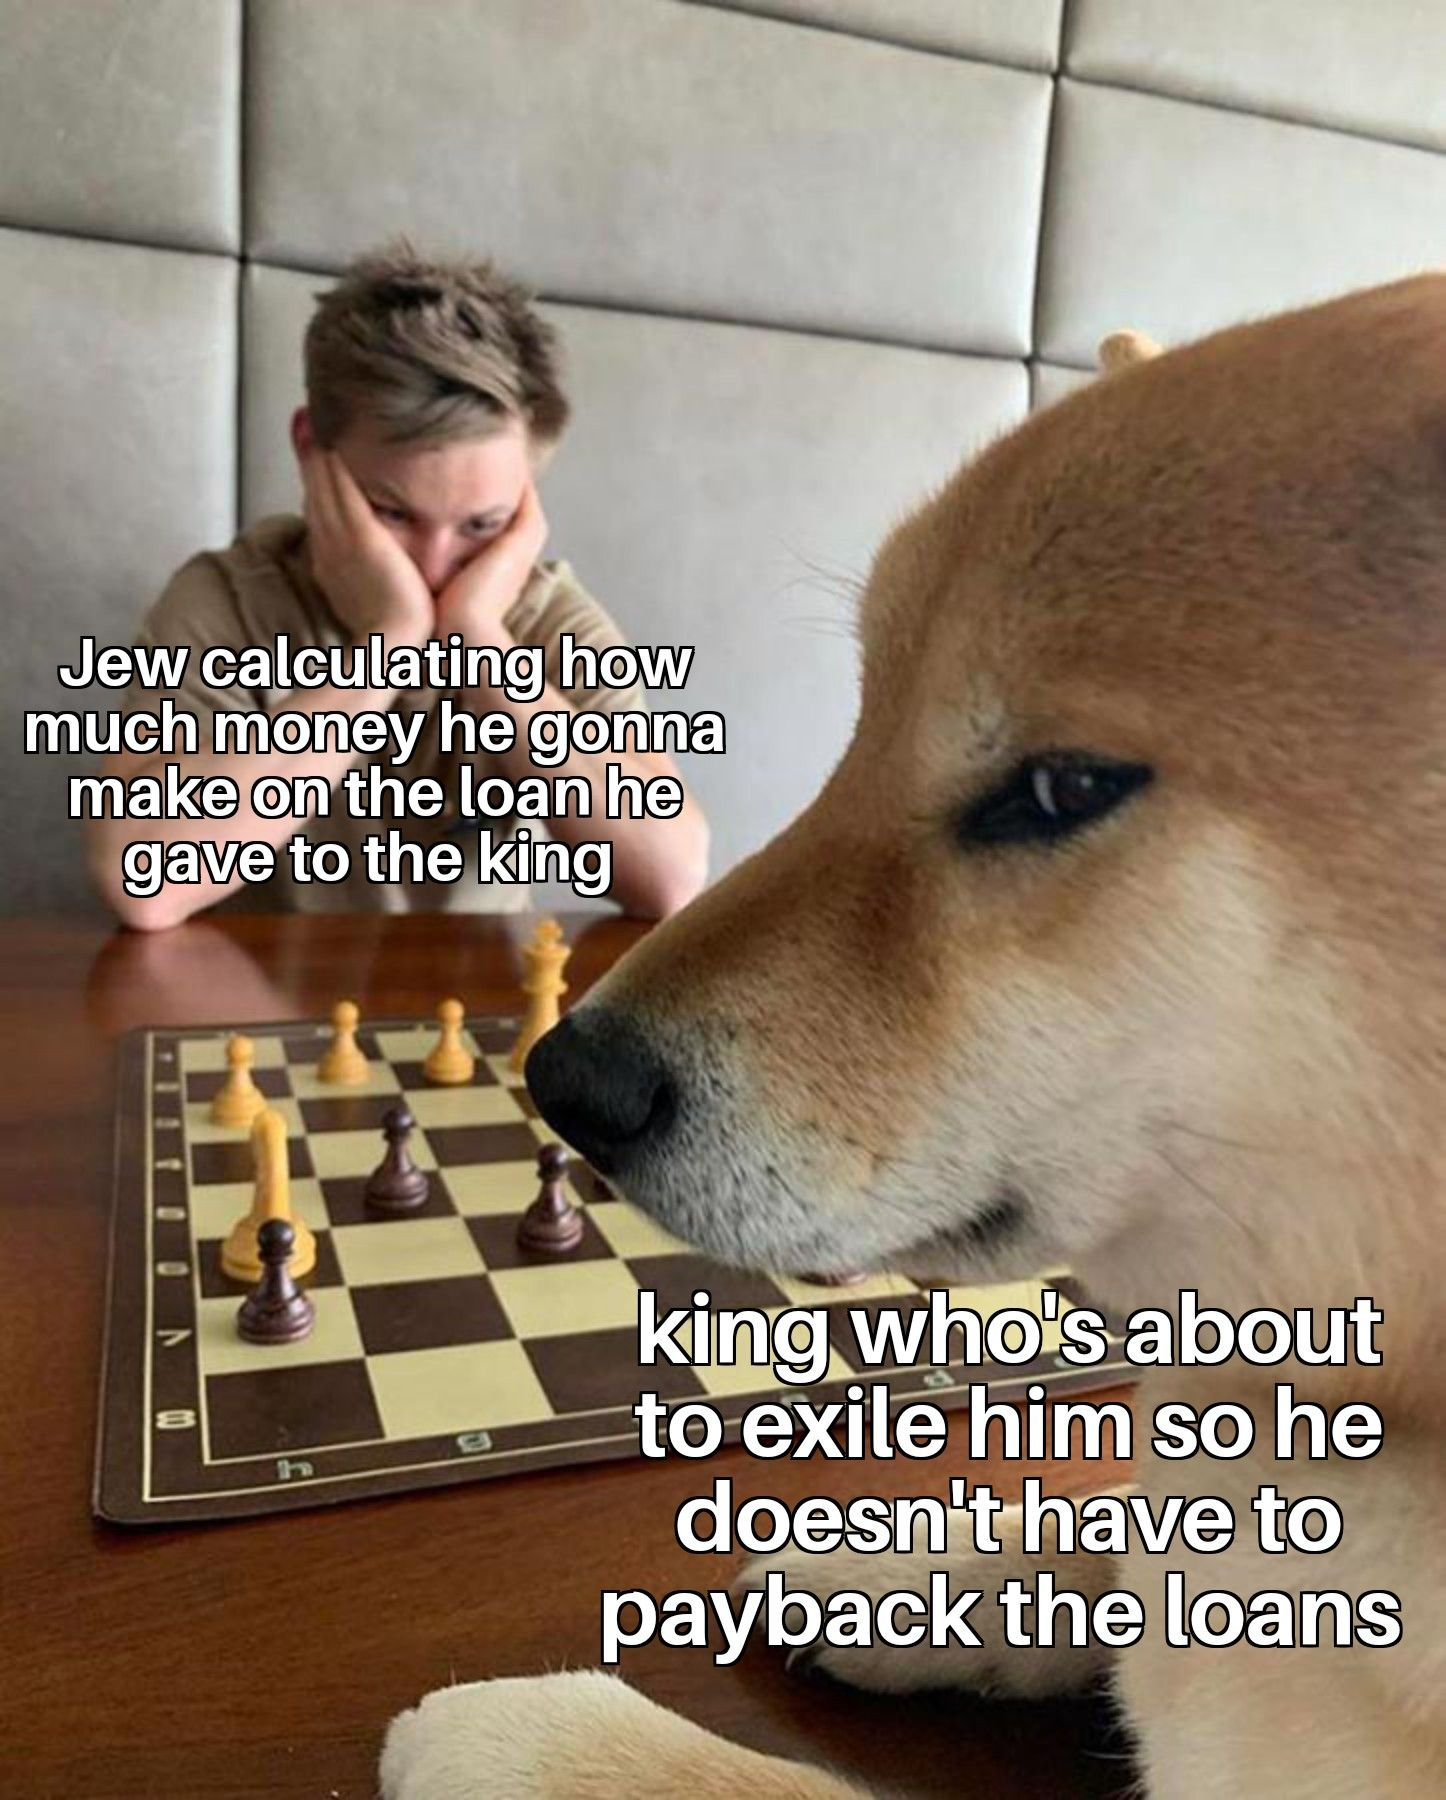 Real 4d chess by medieval European rulers